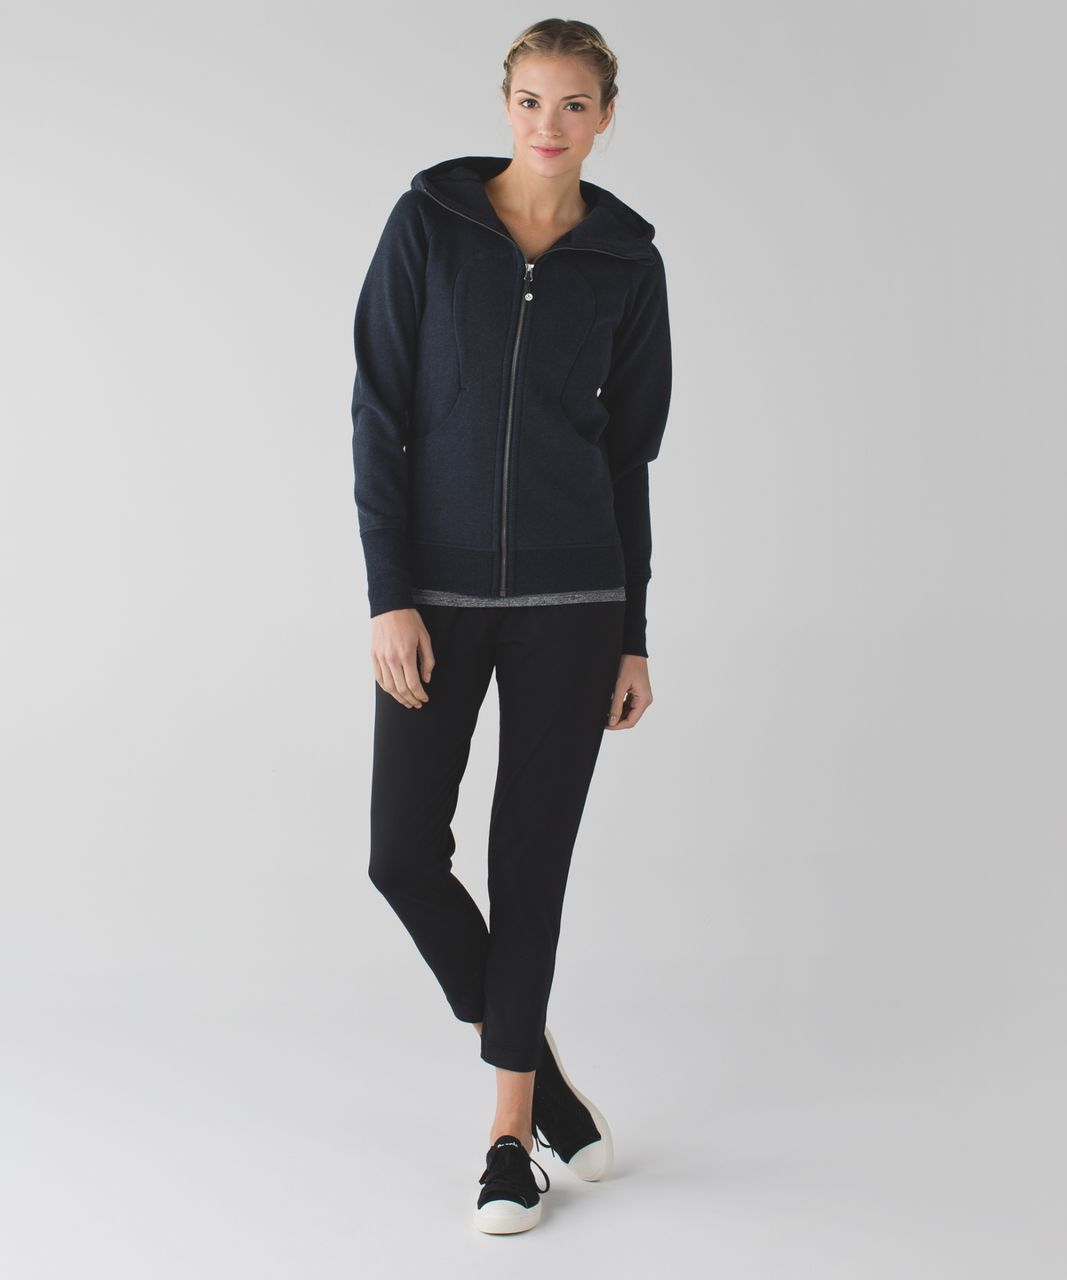 Lululemon Scuba Hoodie *Classic Cotton Fleece - Heathered Naval Blue